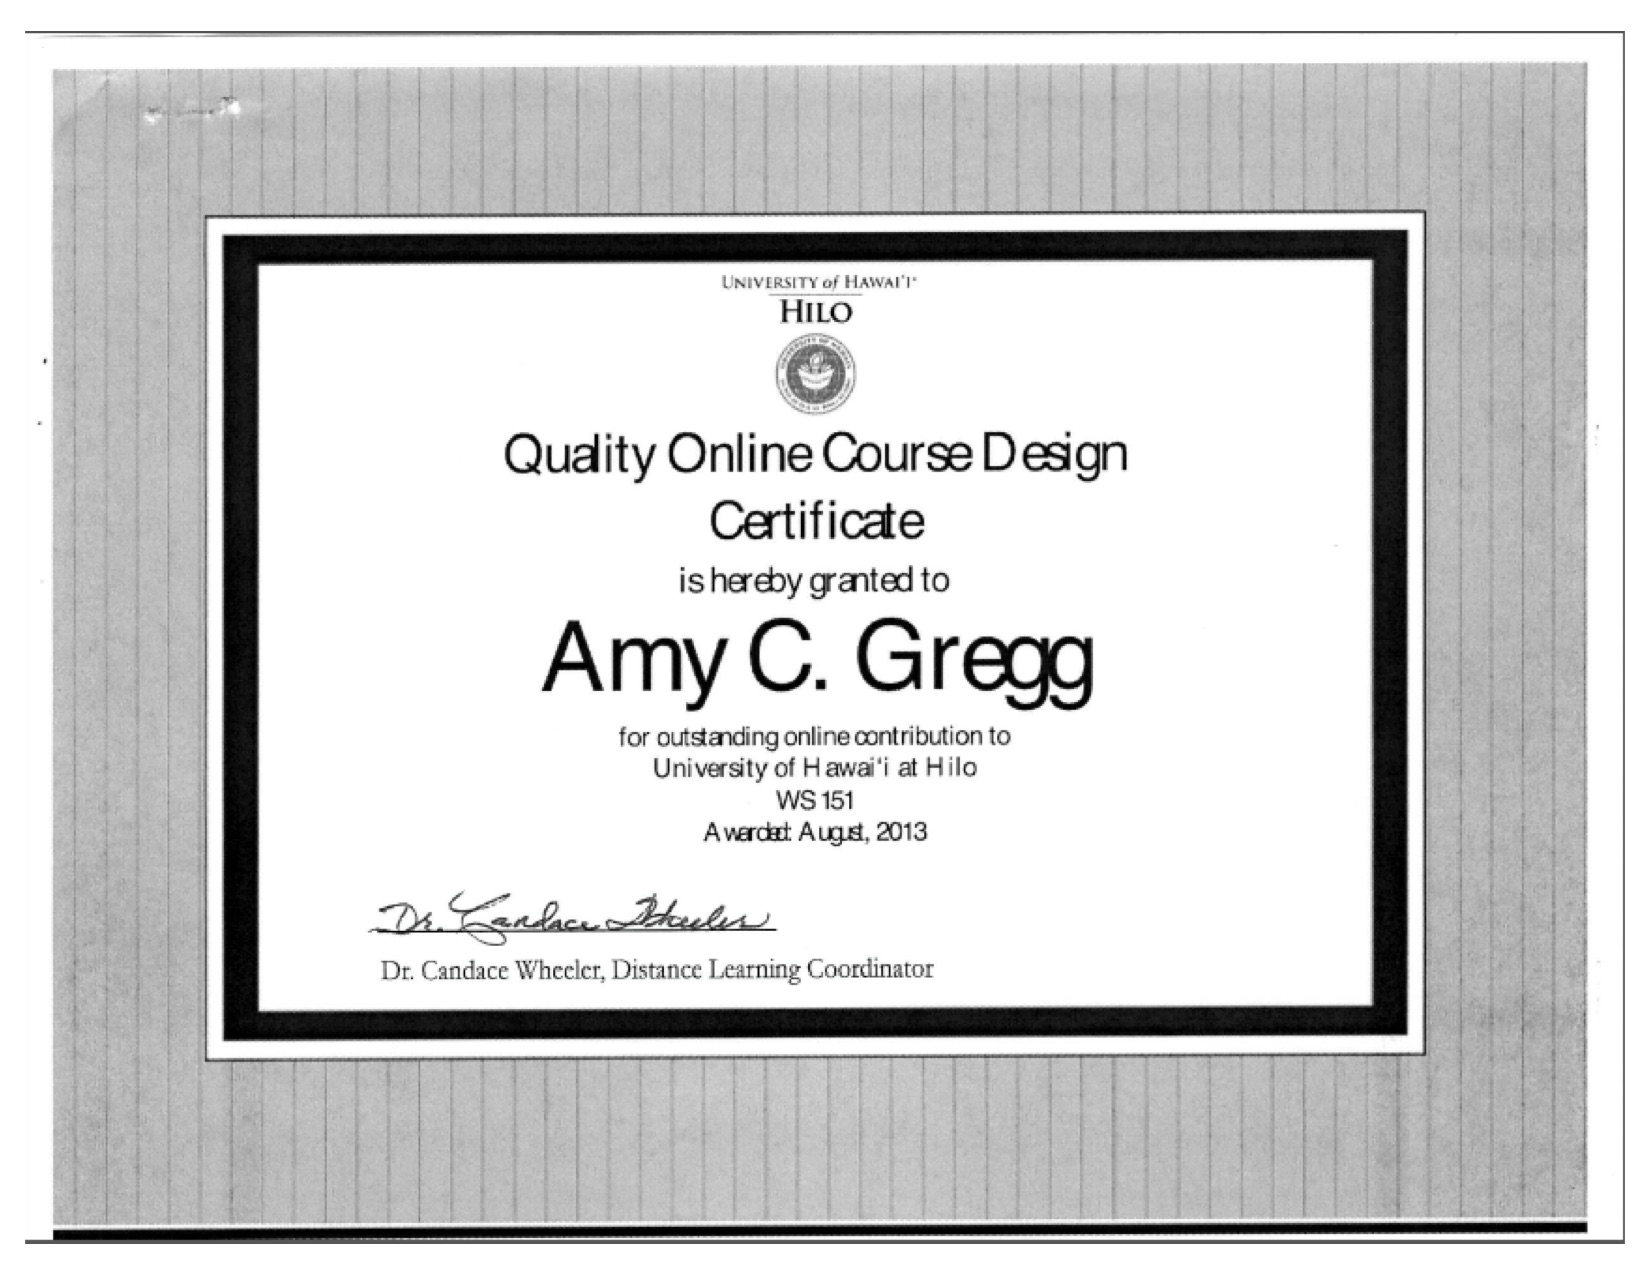 Quality Online Course Design Certificate, awarded to Amy Gregg